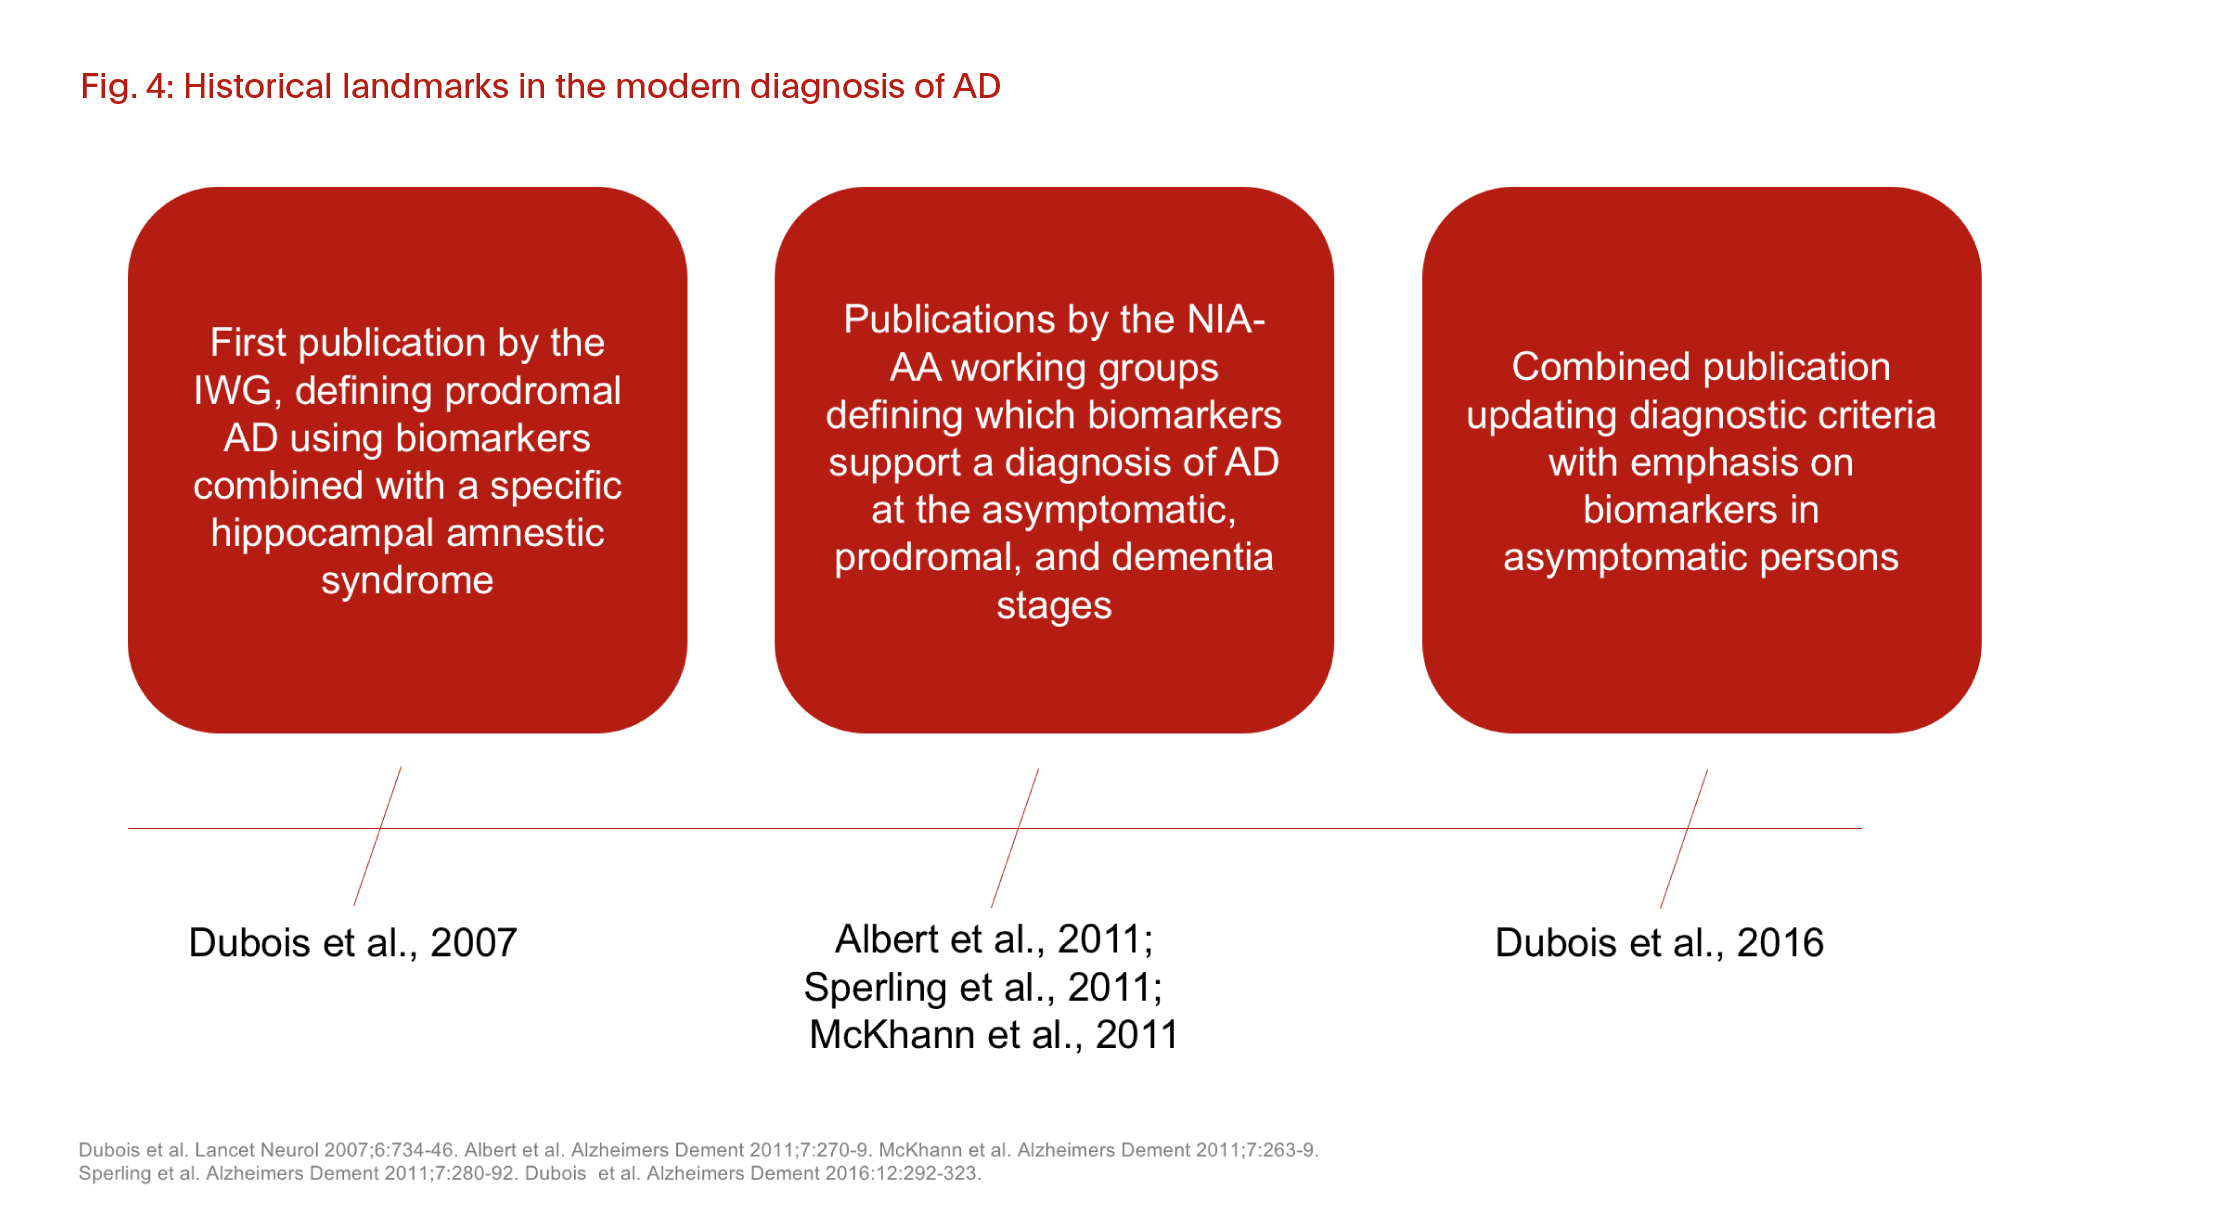 Historical landmarks in the modern diagnosis of AD